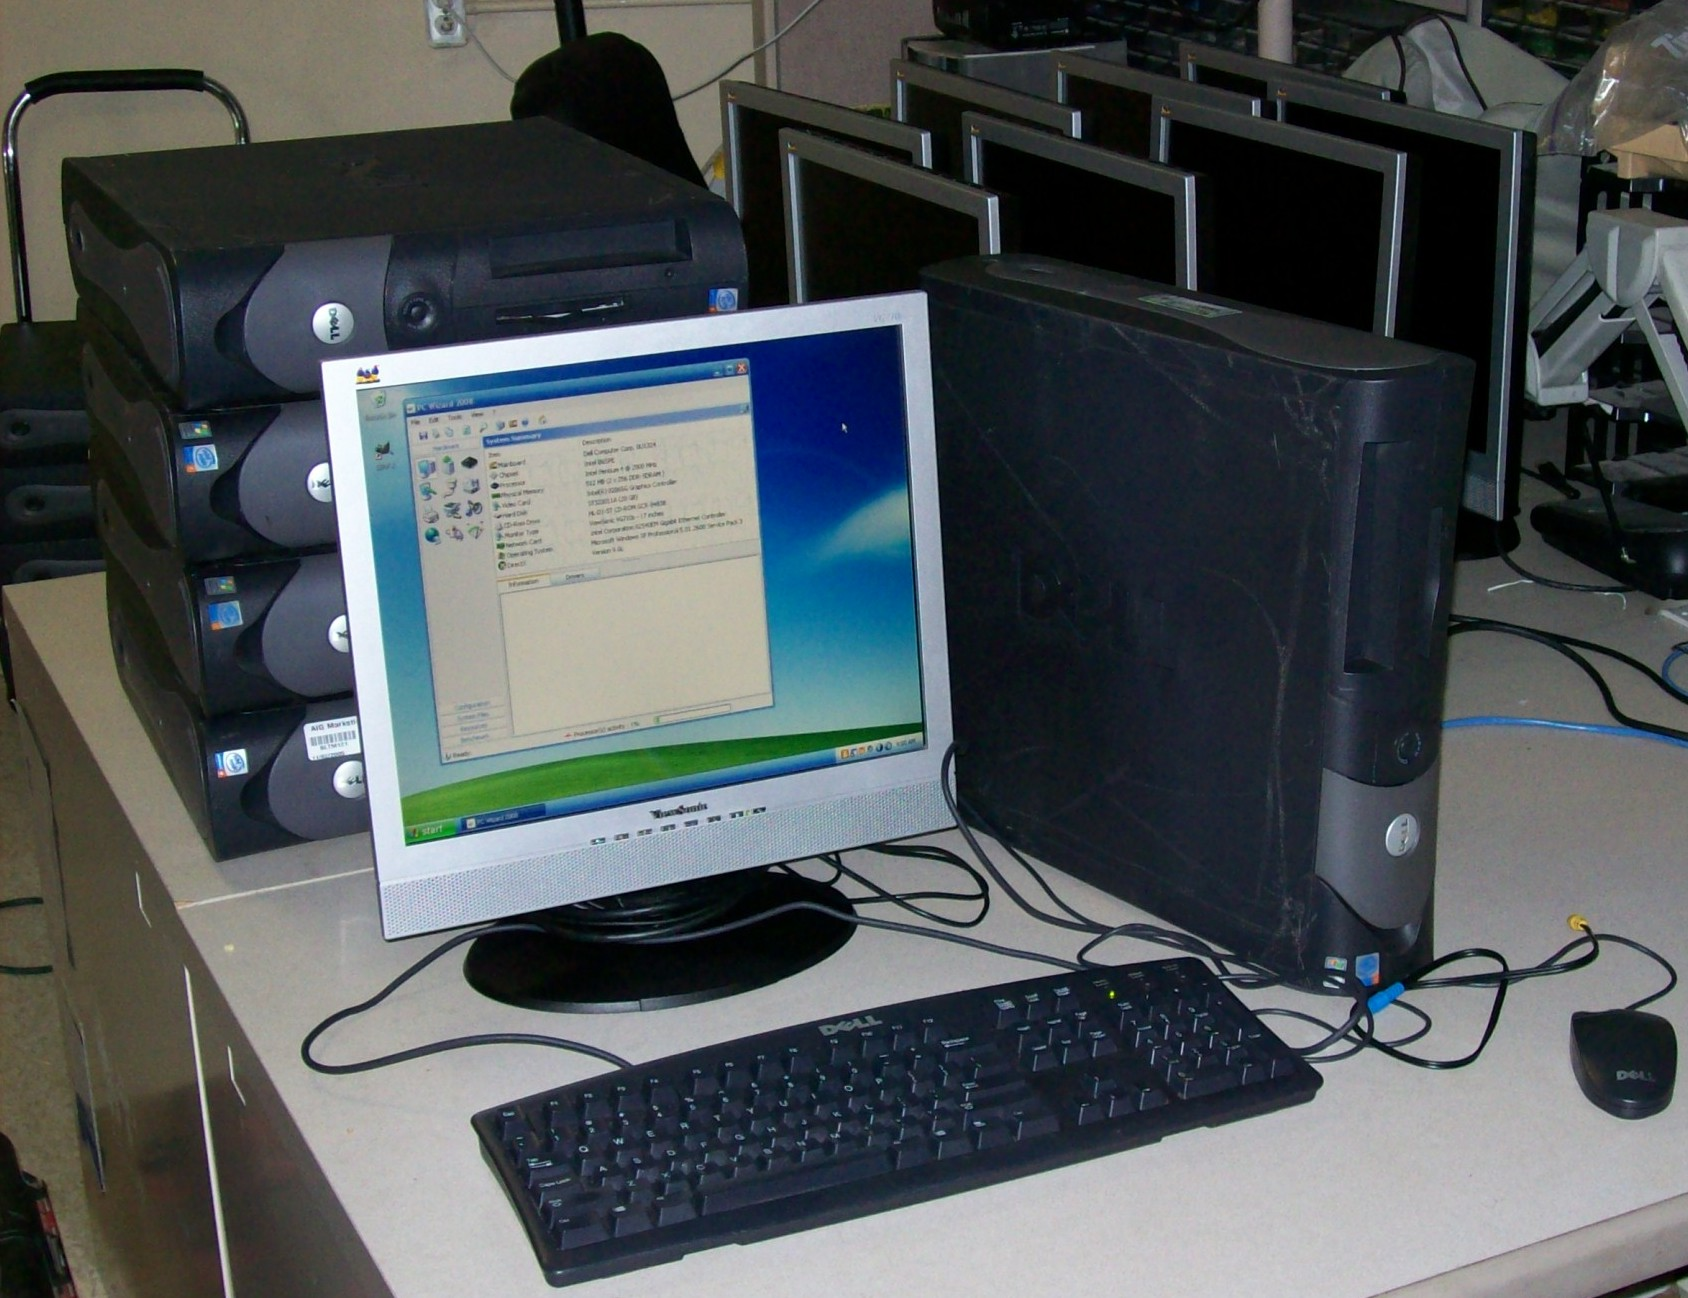 Dell GX280 Computer System with 19in LCD Monitor